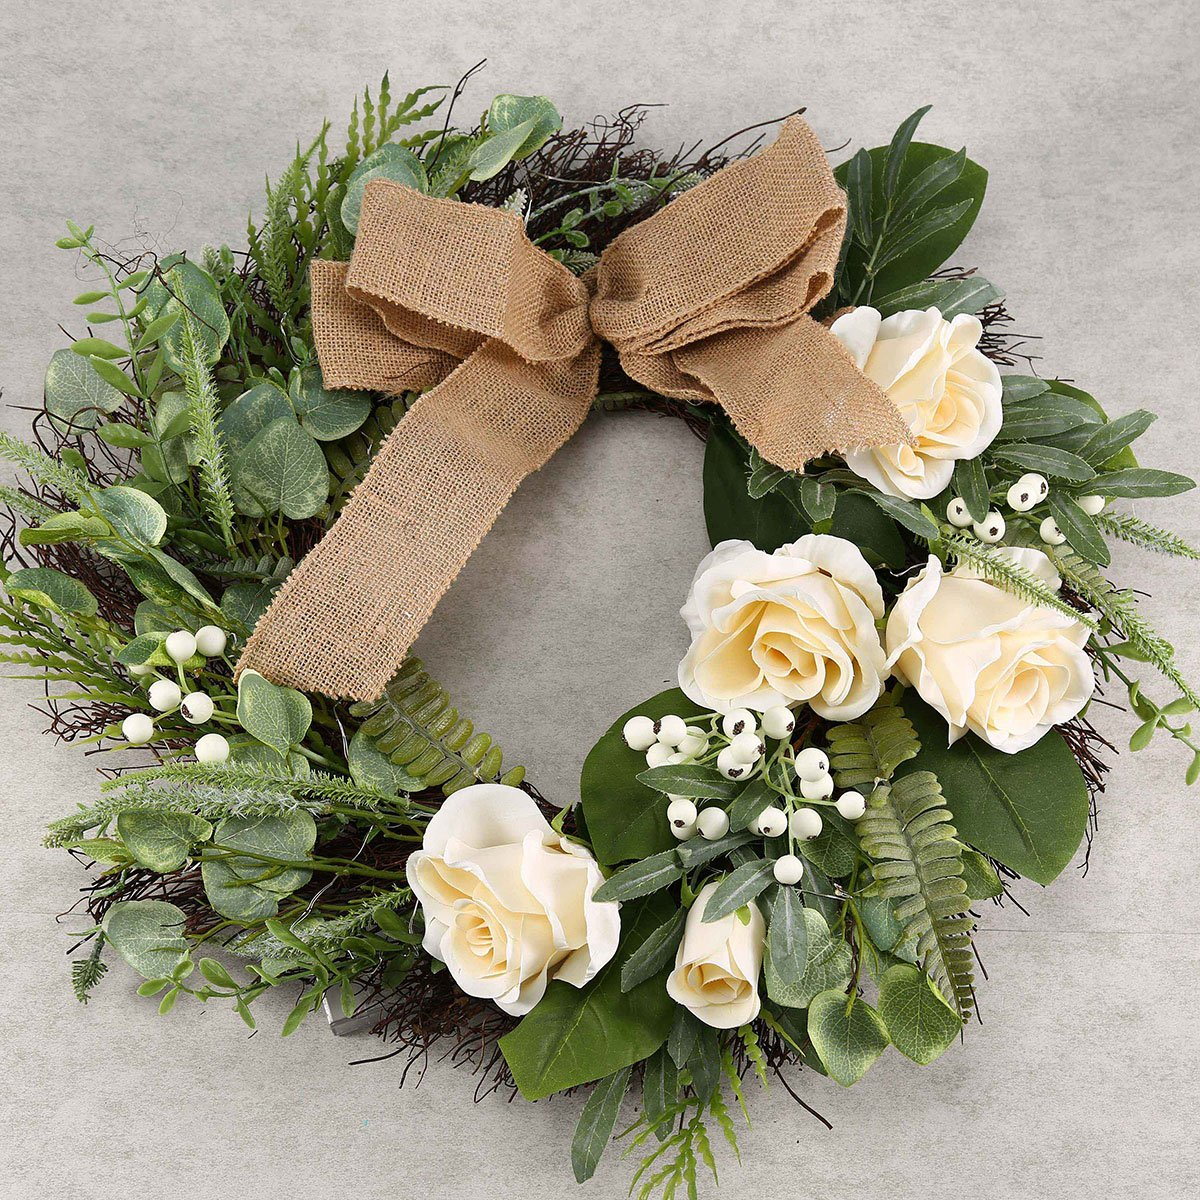 Artificial Outdoor Wreath With Lights 19 Inch Handcrafted Wreaths for Winter Home Decor, Green Front Door Wreath for Garden (Rose)